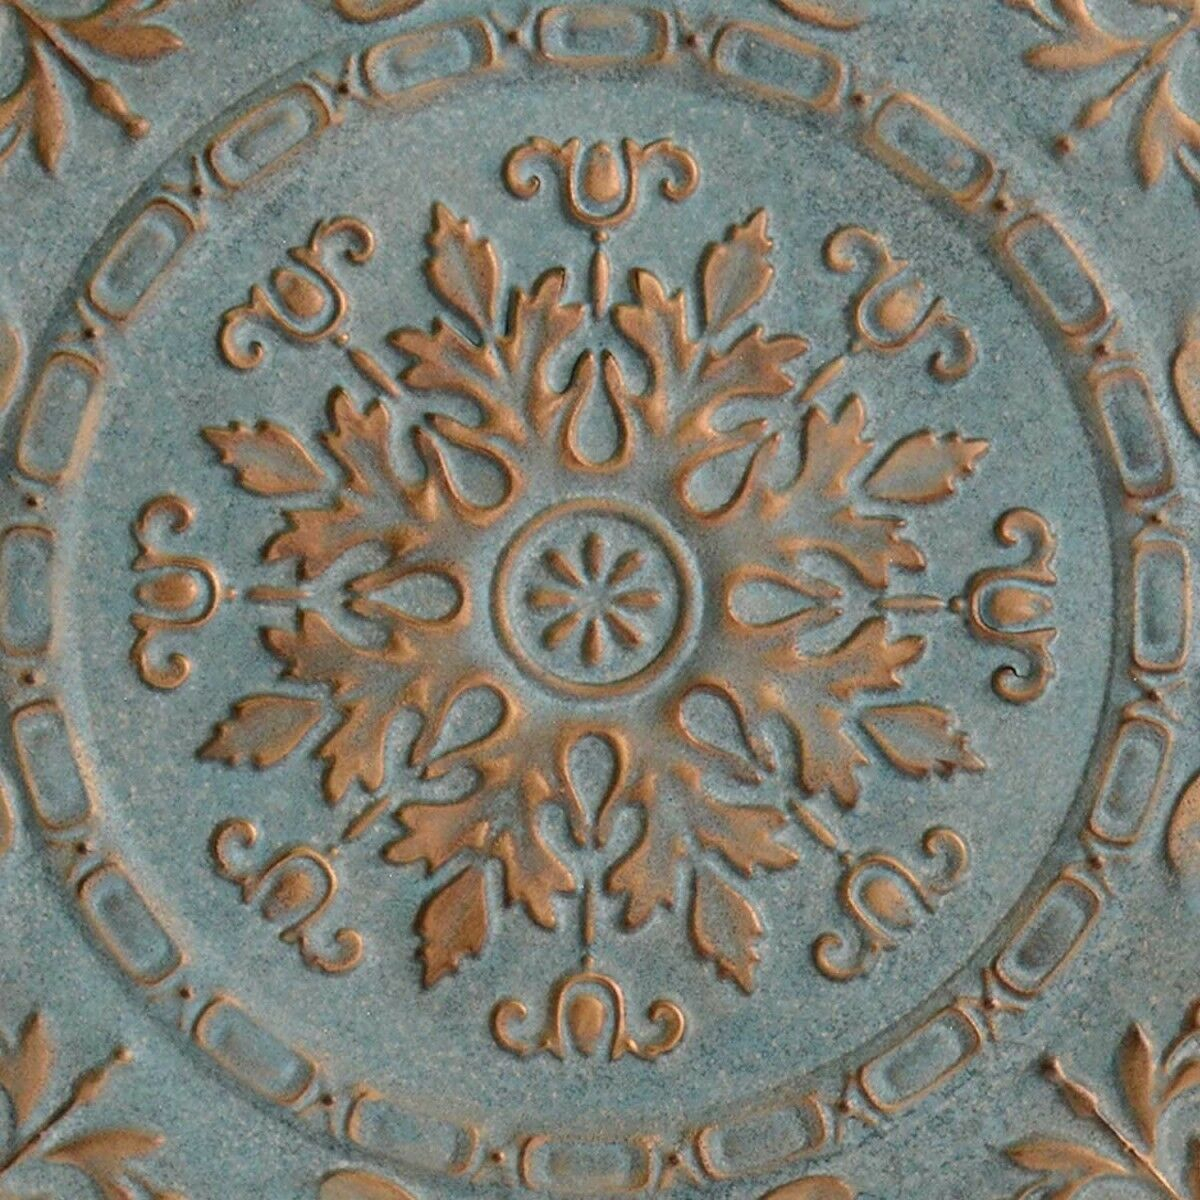 Details About Stratton Home Decor S09598 European Medallion Wall Decor Blue Throughout European Medallion Wall Decor (Photo 2 of 30)